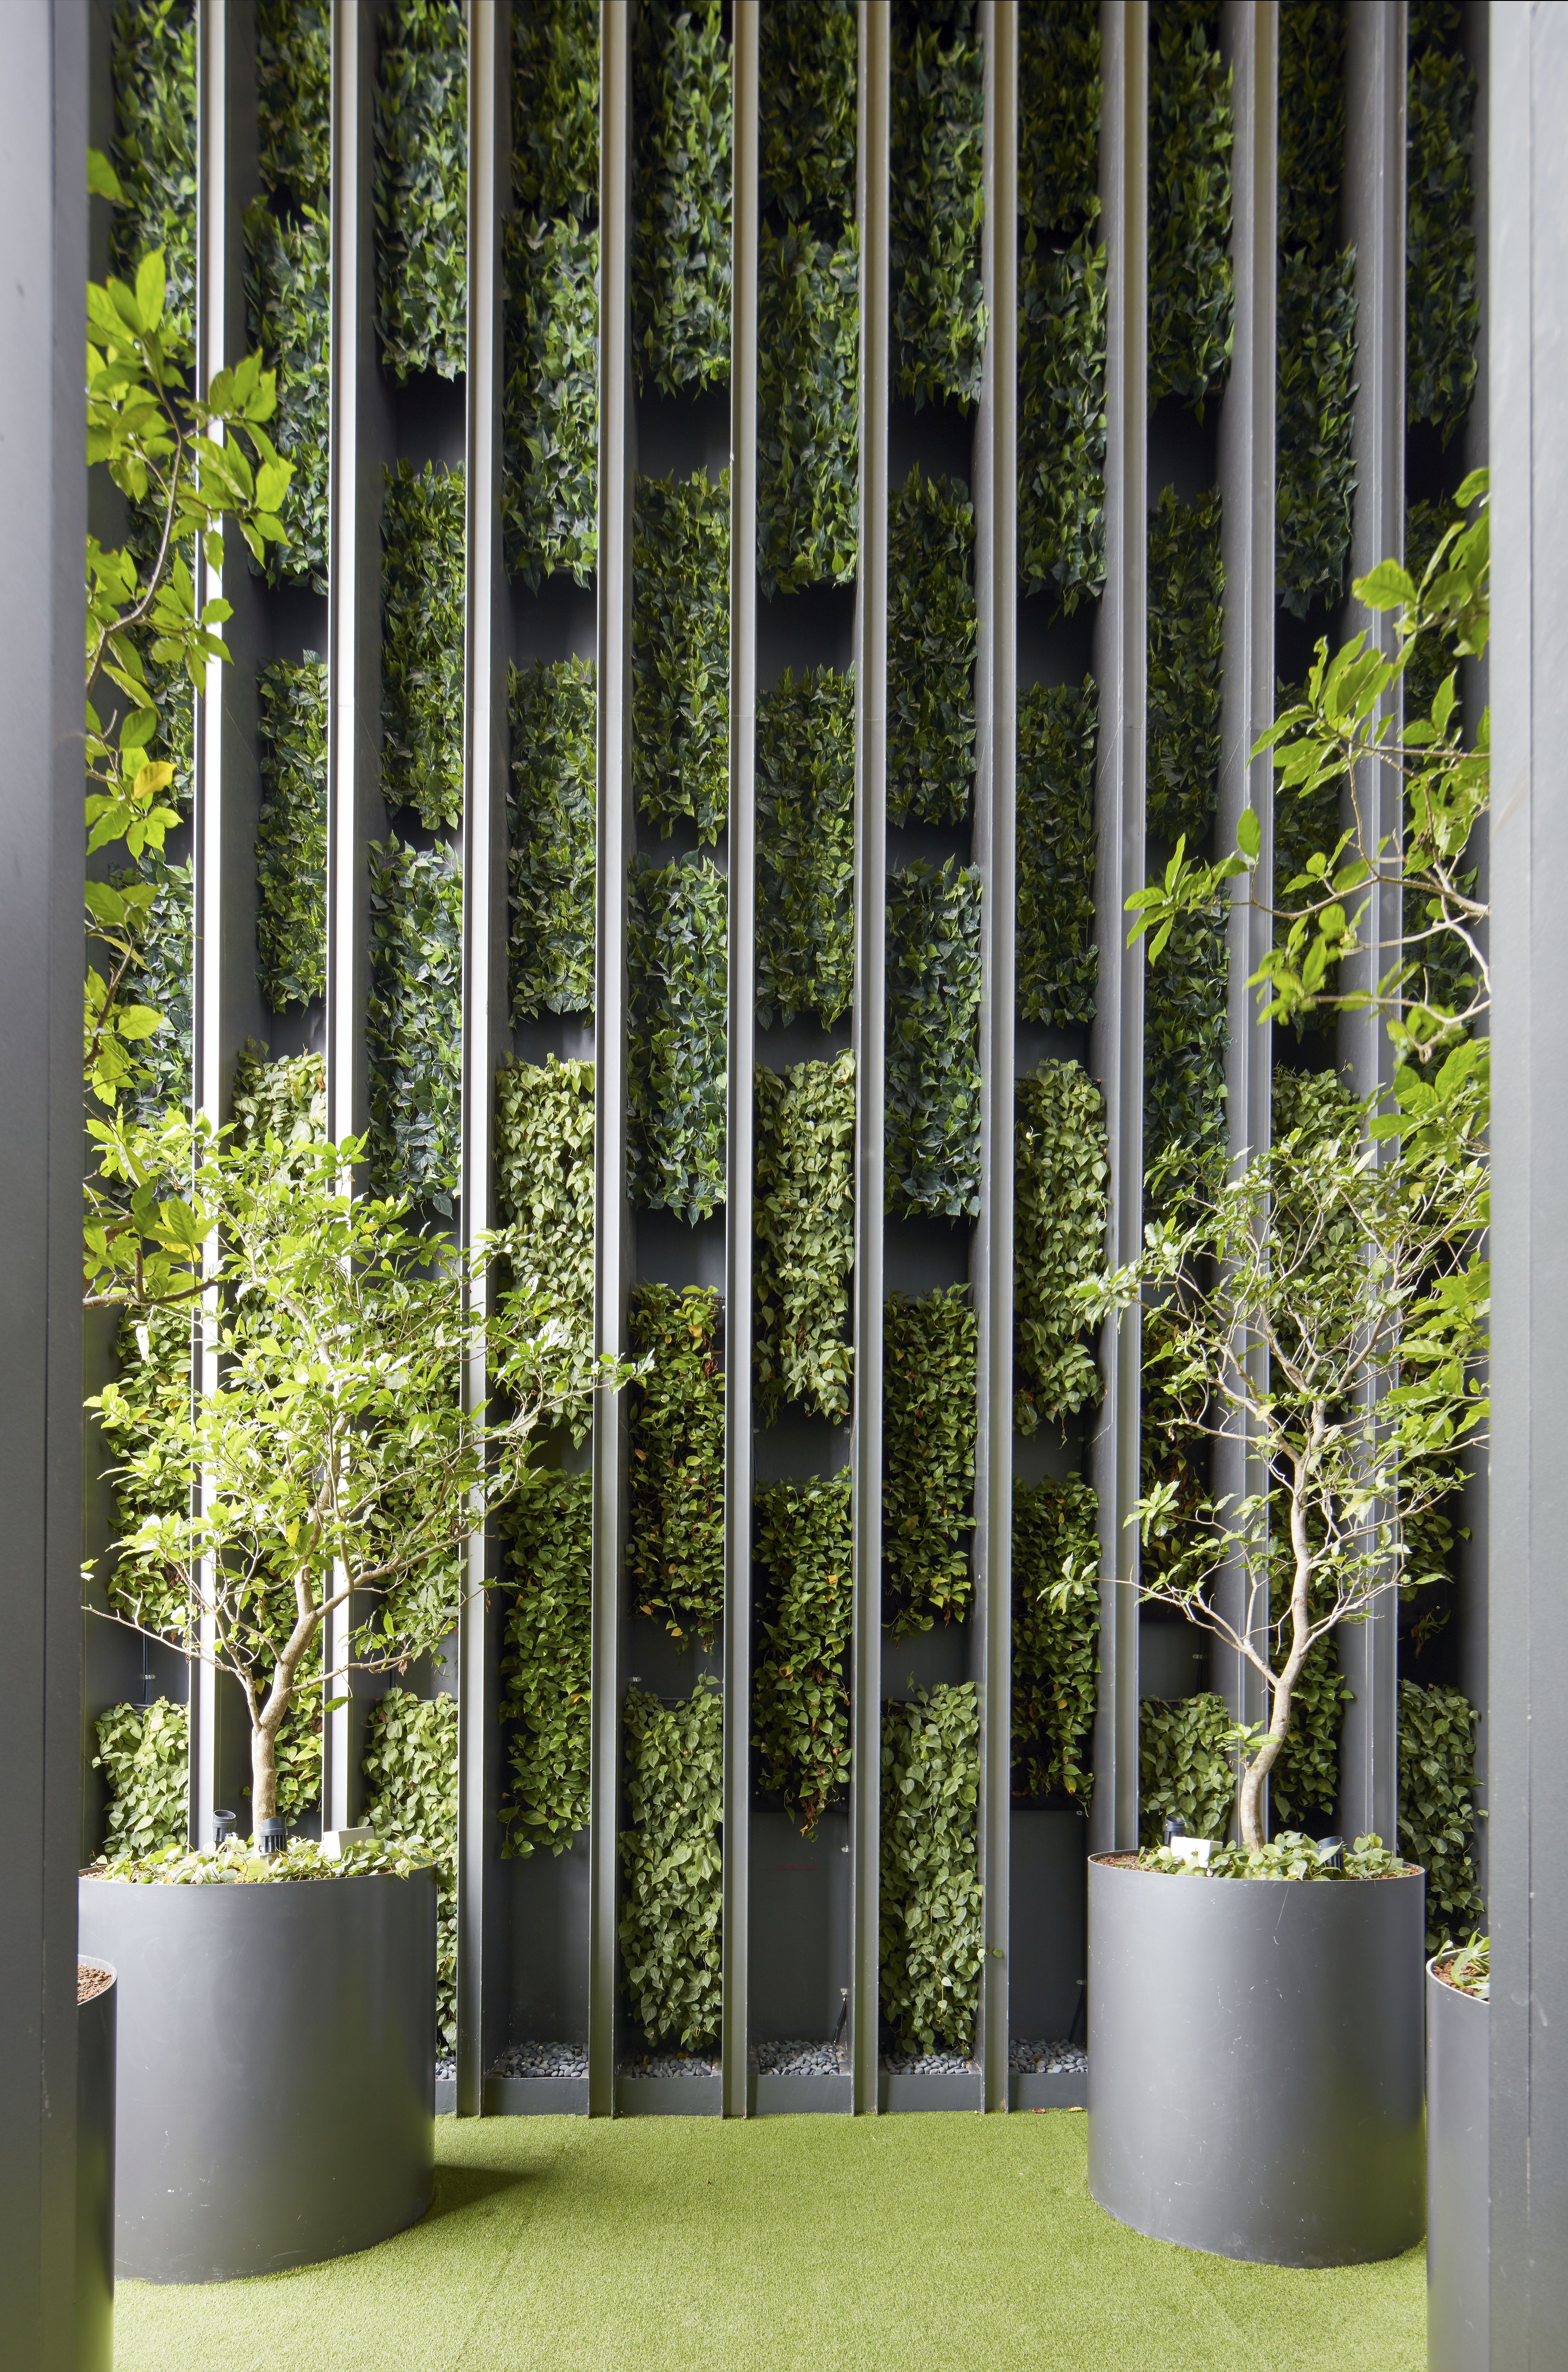 Pin by Benjarat Boonshoo on green wall  Vertical garden design